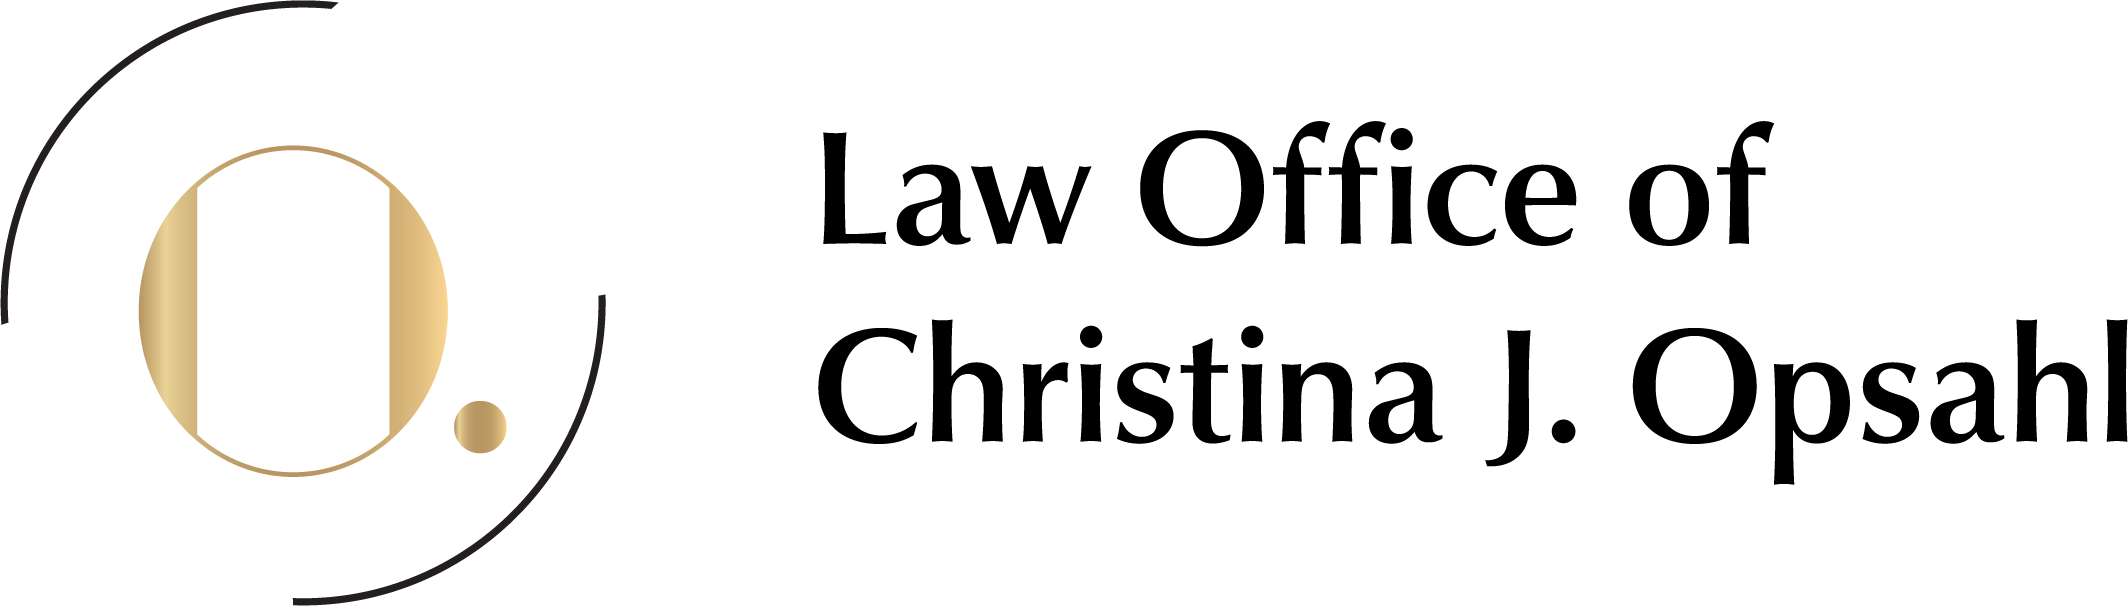 Christy-opsahl-law-office-staugustine-florida-trial-lawyer-criminal-defense-logo